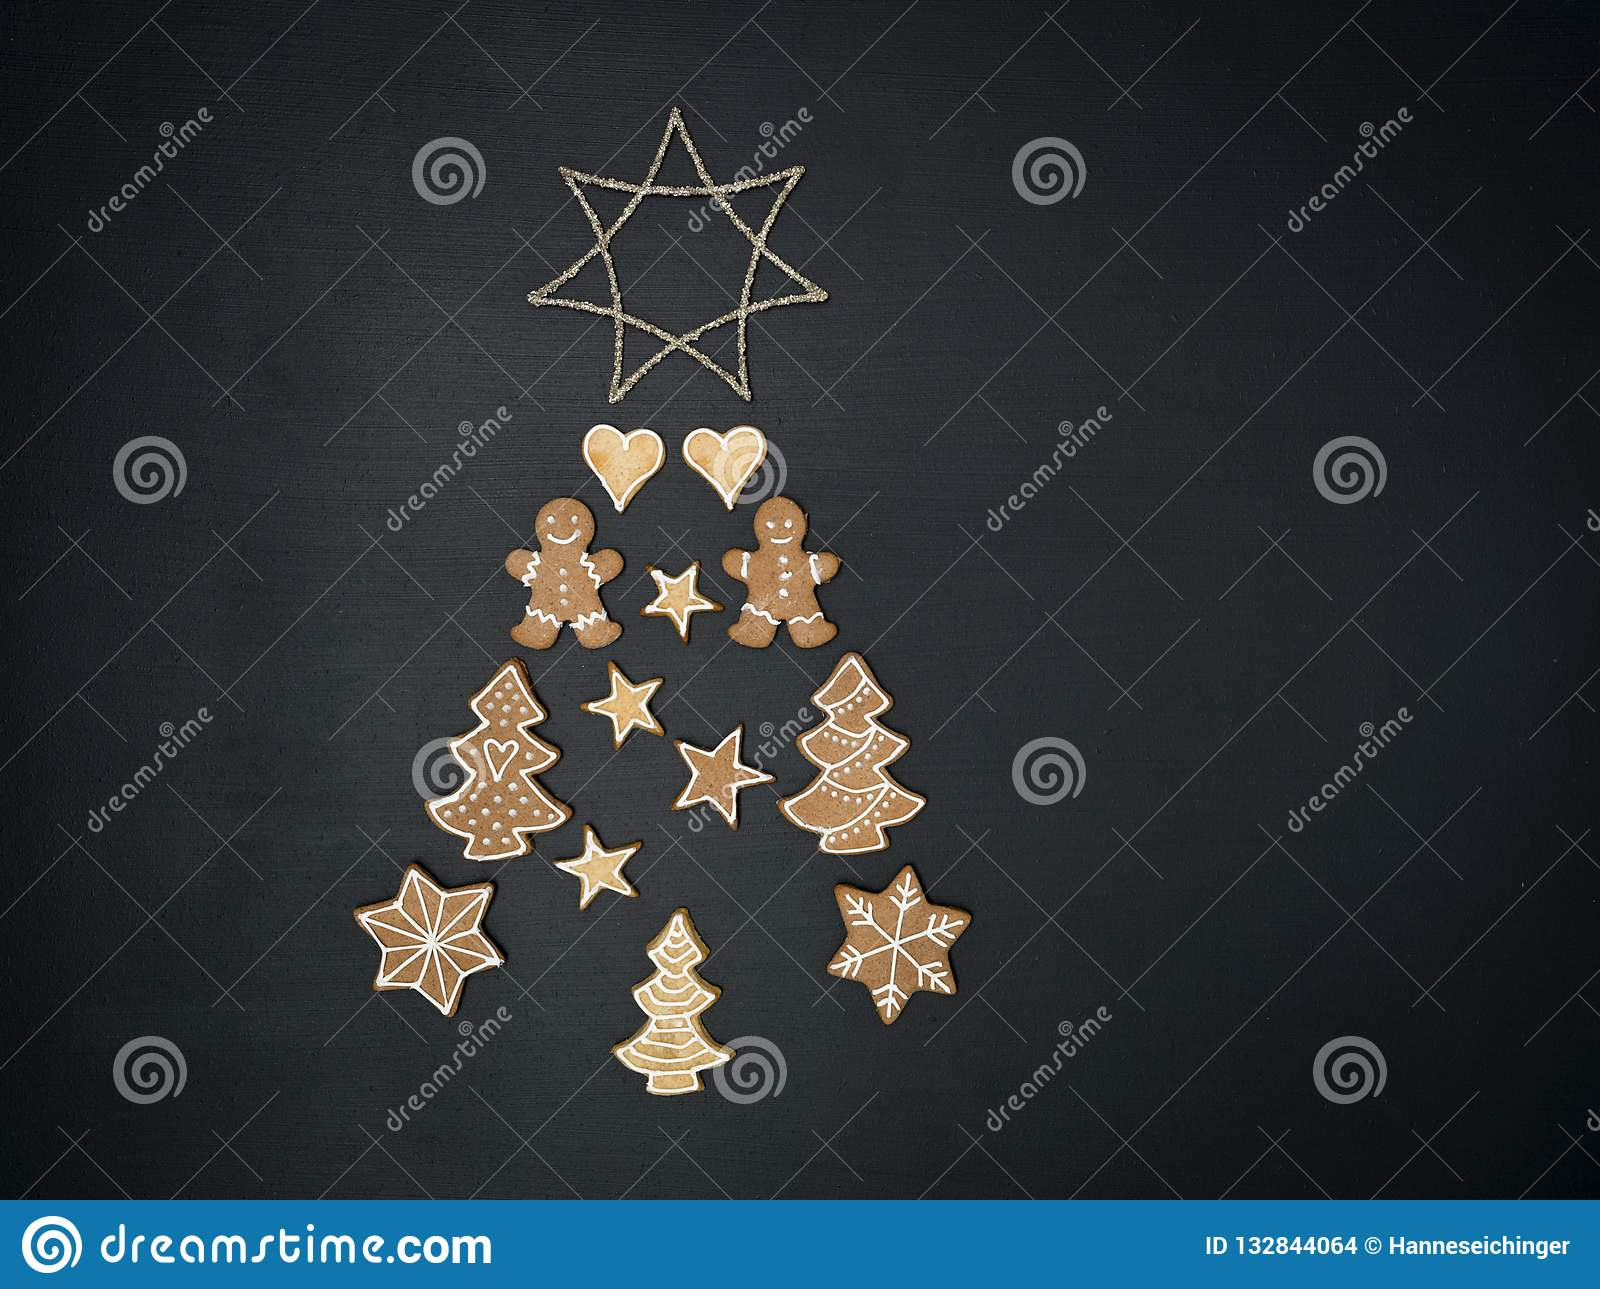 Christmas Tree Shaped Out Of Different Christmas Deco Items Stock